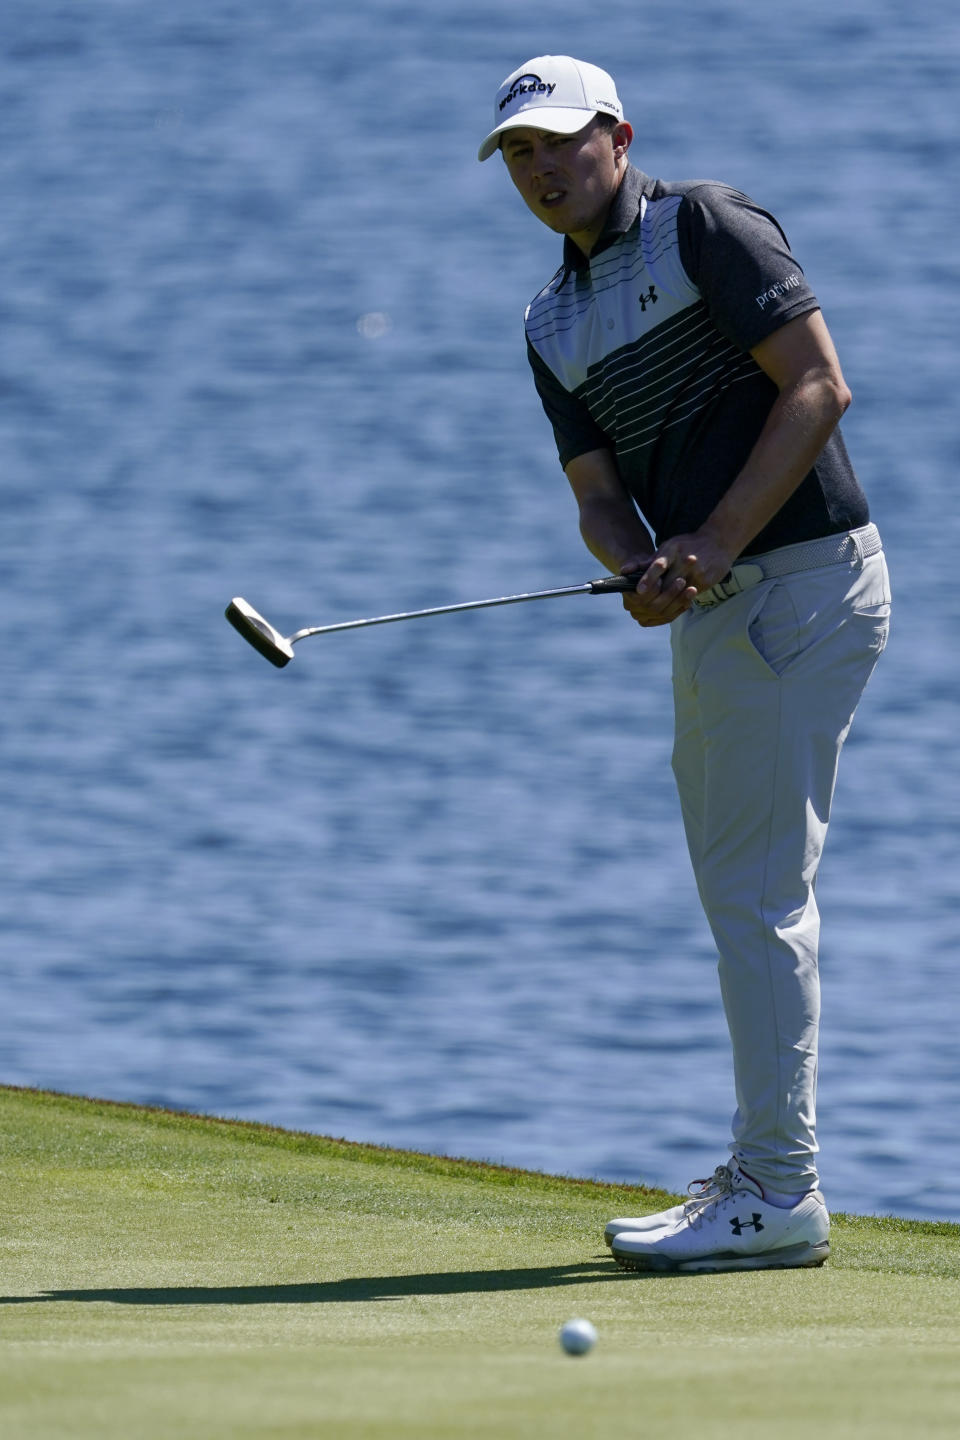 Matthew Fitzpatrick of England watches his putt on the 18th hole during the first round of the The Players Championship golf tournament Thursday, March 11, 2021, in Ponte Vedra Beach, Fla. (AP Photo/John Raoux)